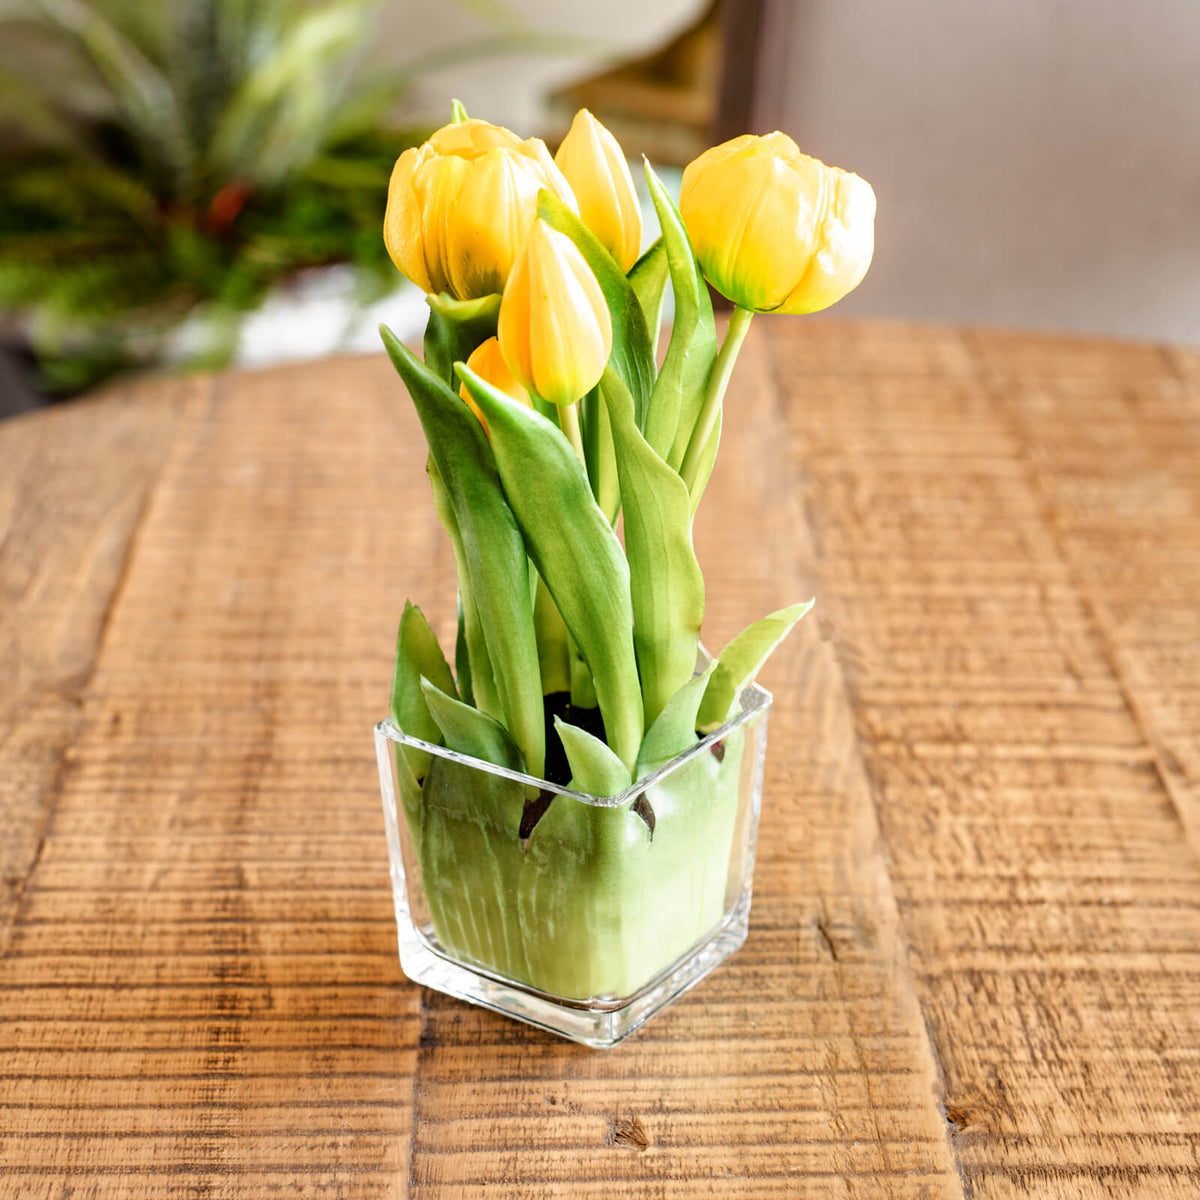 Very realistic looking faux yellow tulips resting on a table.